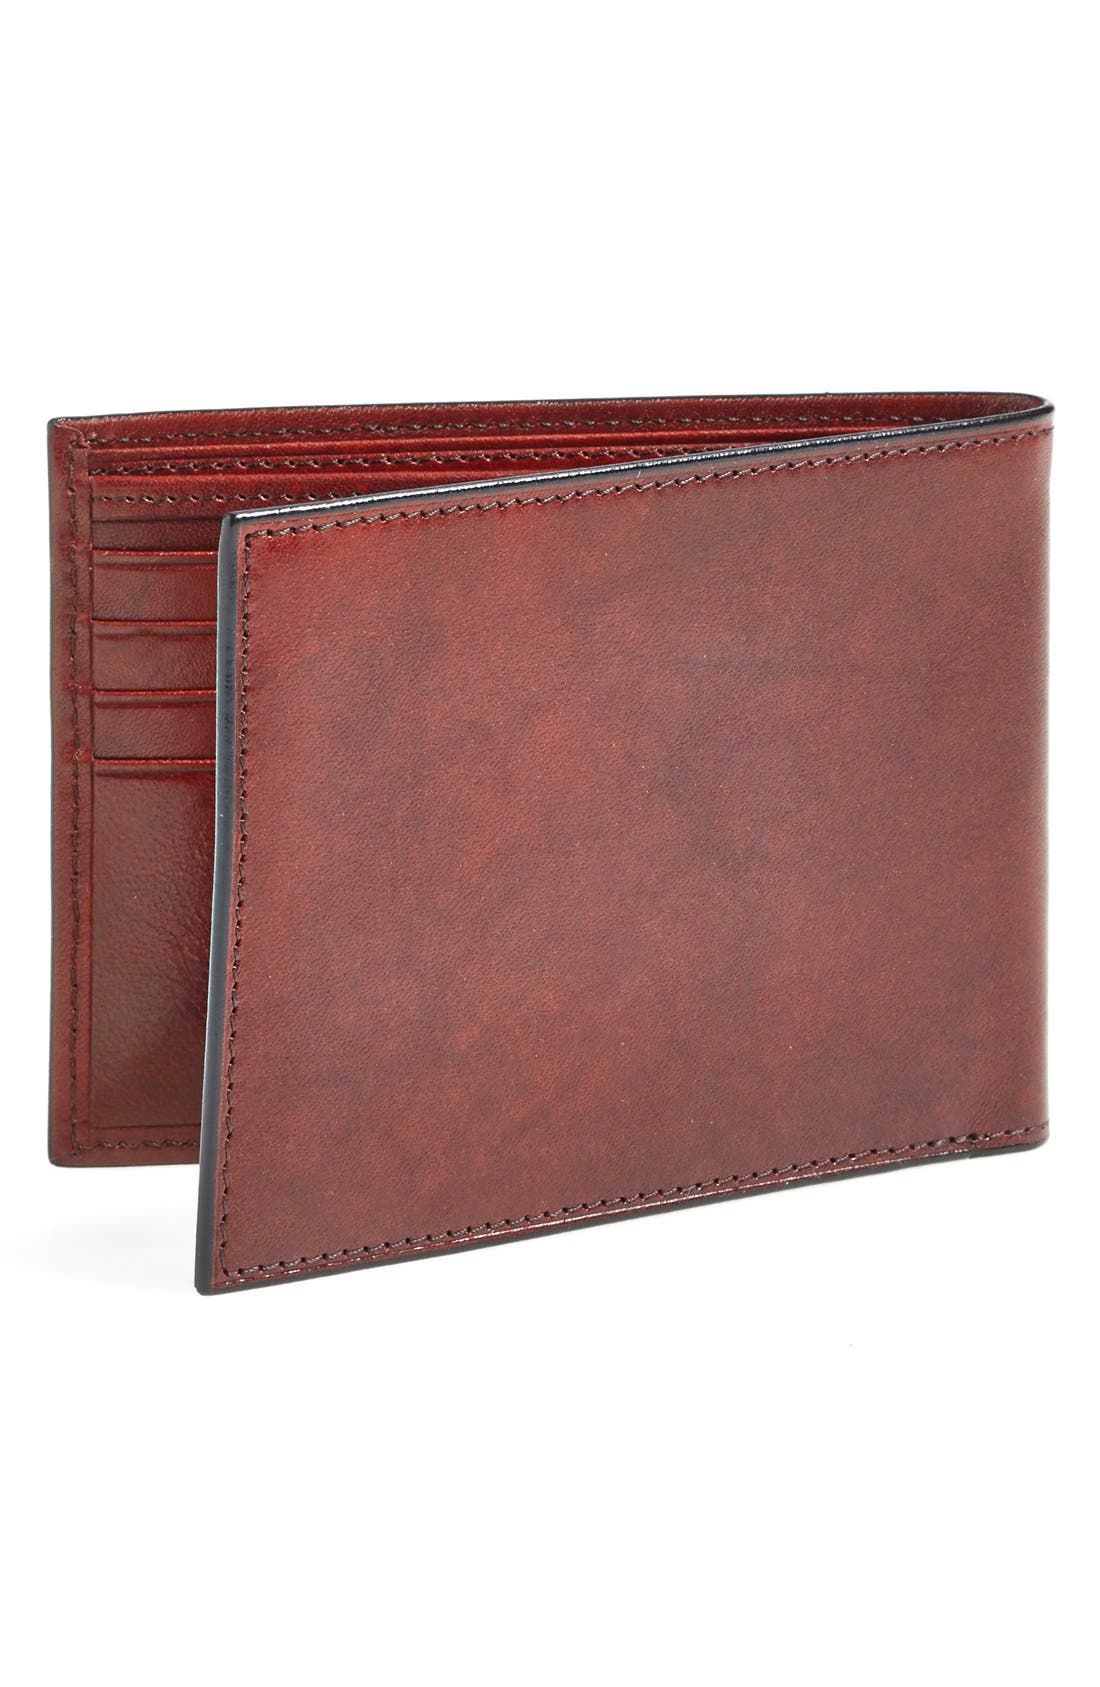 'Old Leather' Deluxe Wallet,                             Alternate thumbnail 3, color,                             Dark Brown